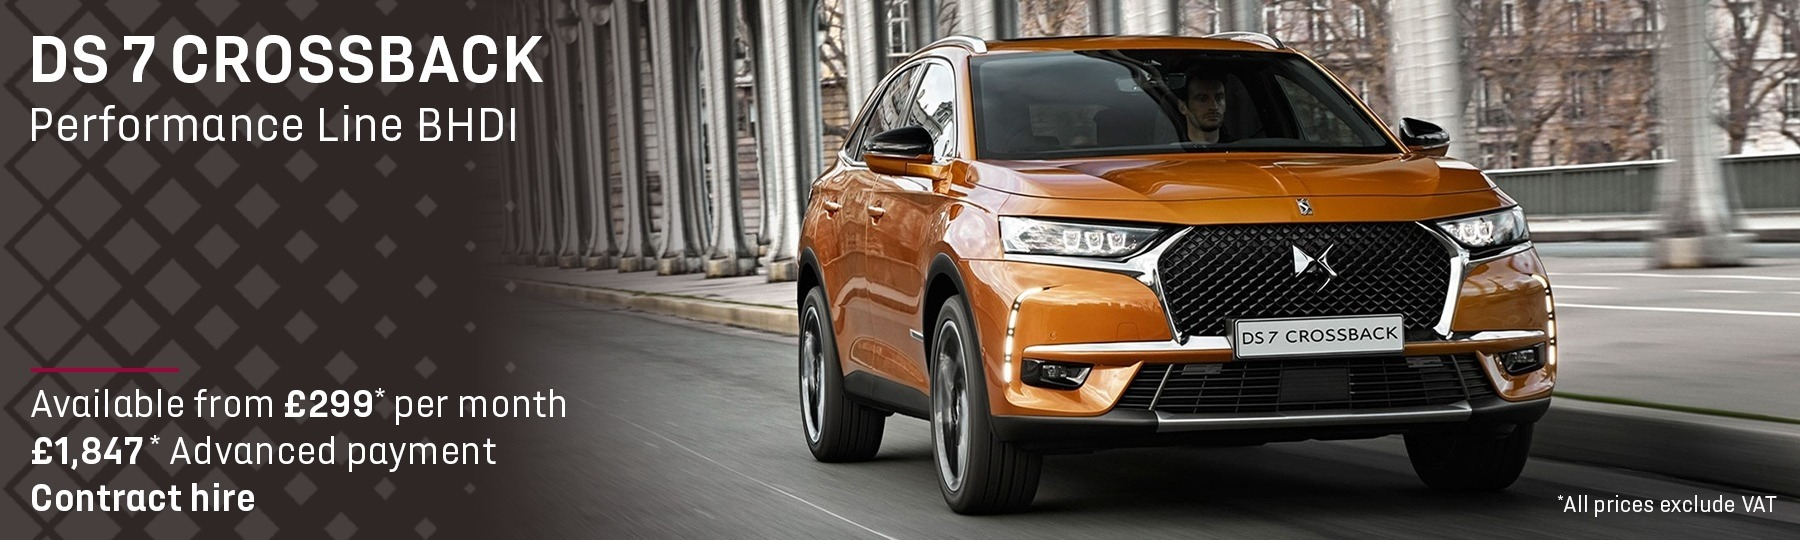 DS 7 CROSSBACK Leasing Offer